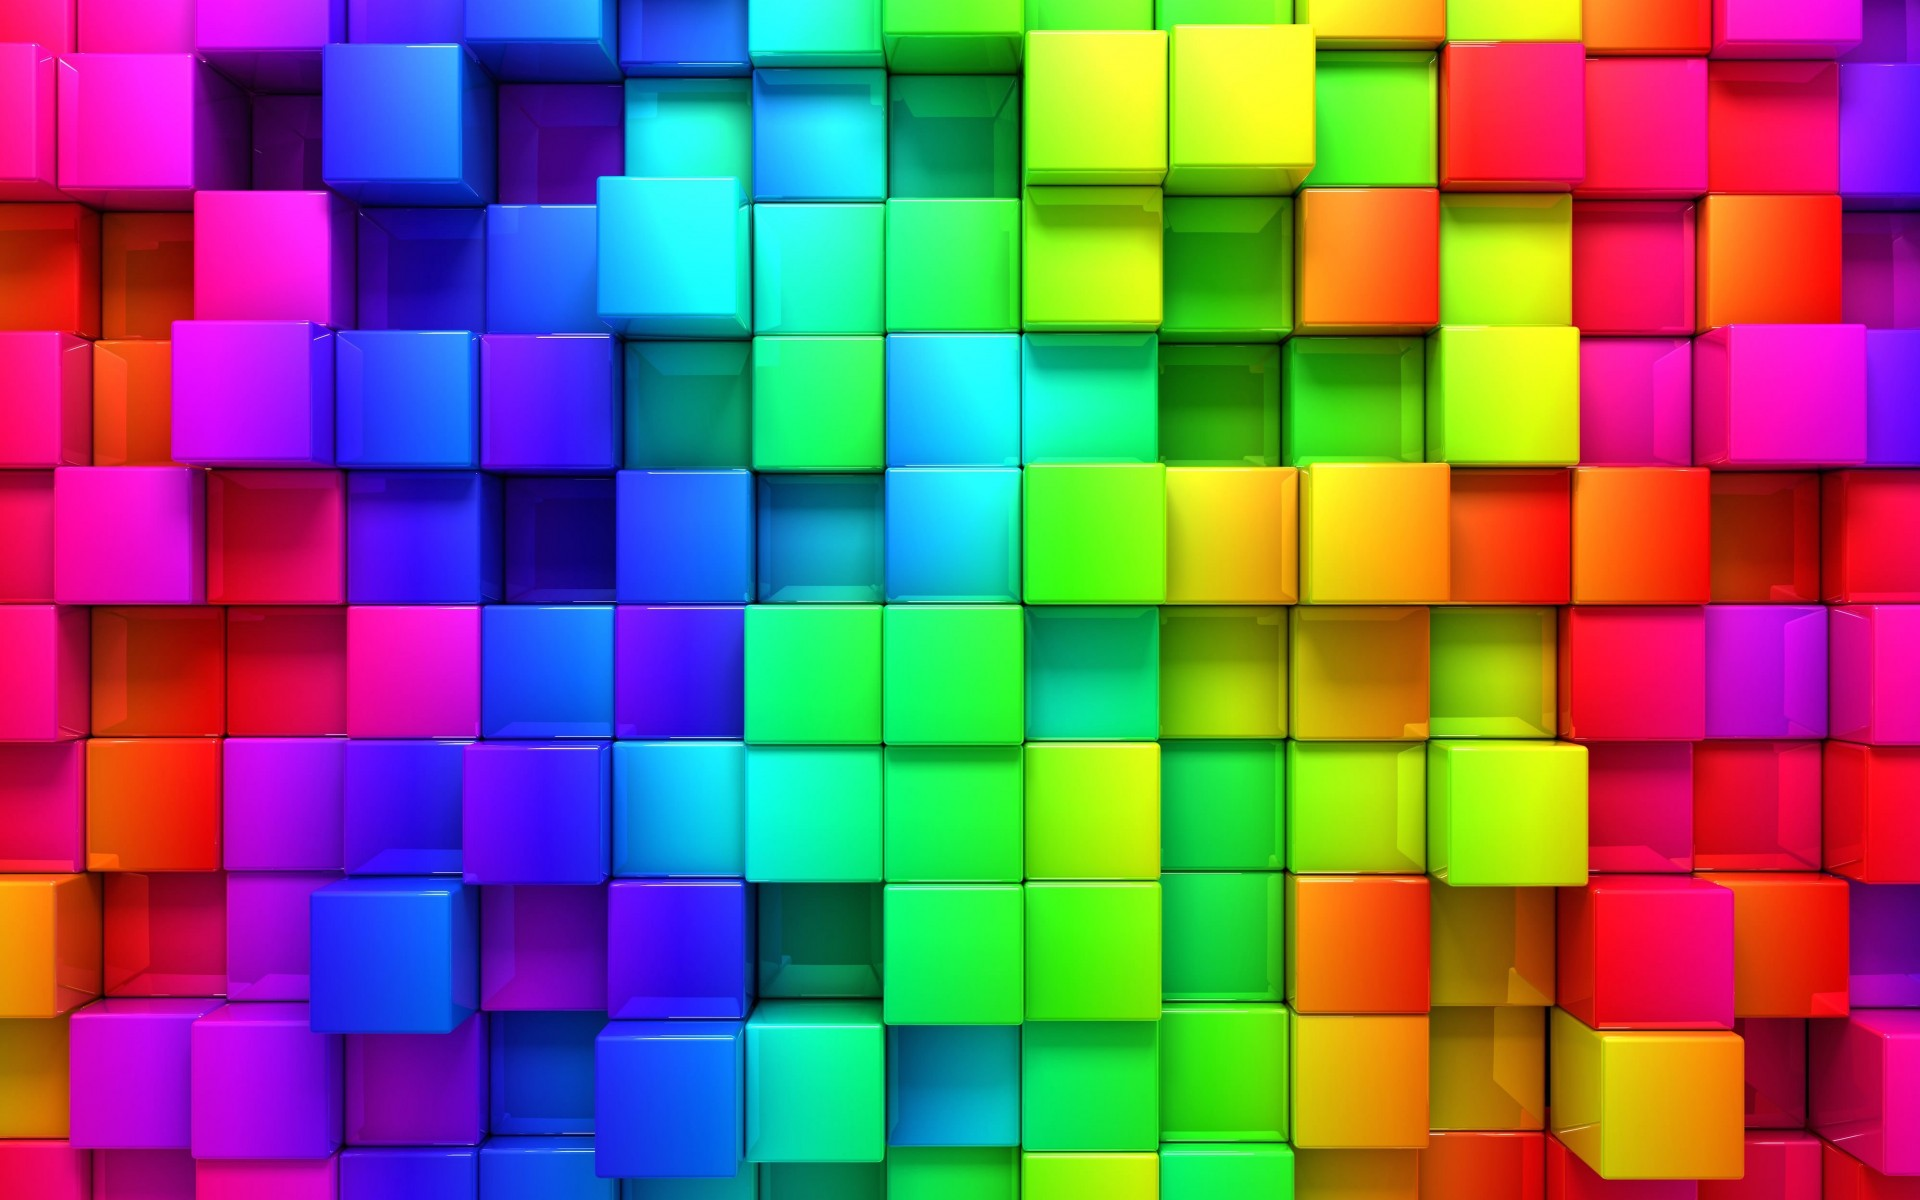 Cubic Rainbow Wallpaper for Desktop 1920x1200